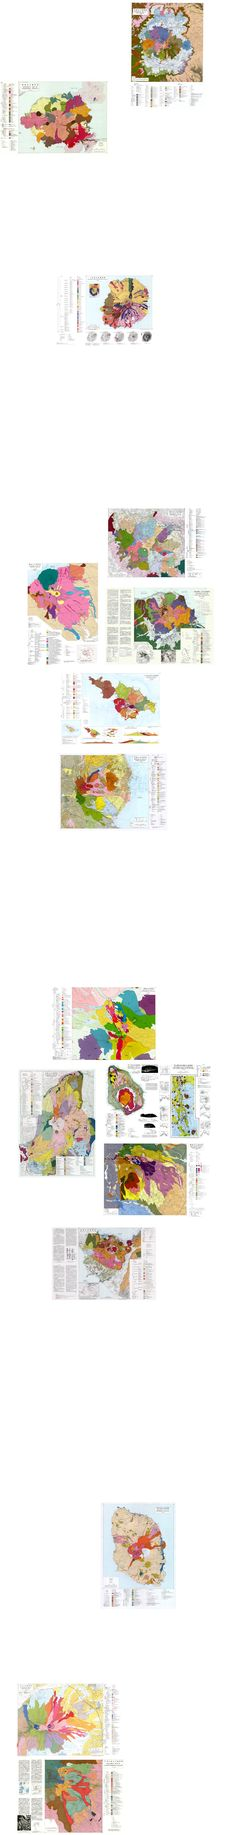 Geological maps of volcanoes in Japan